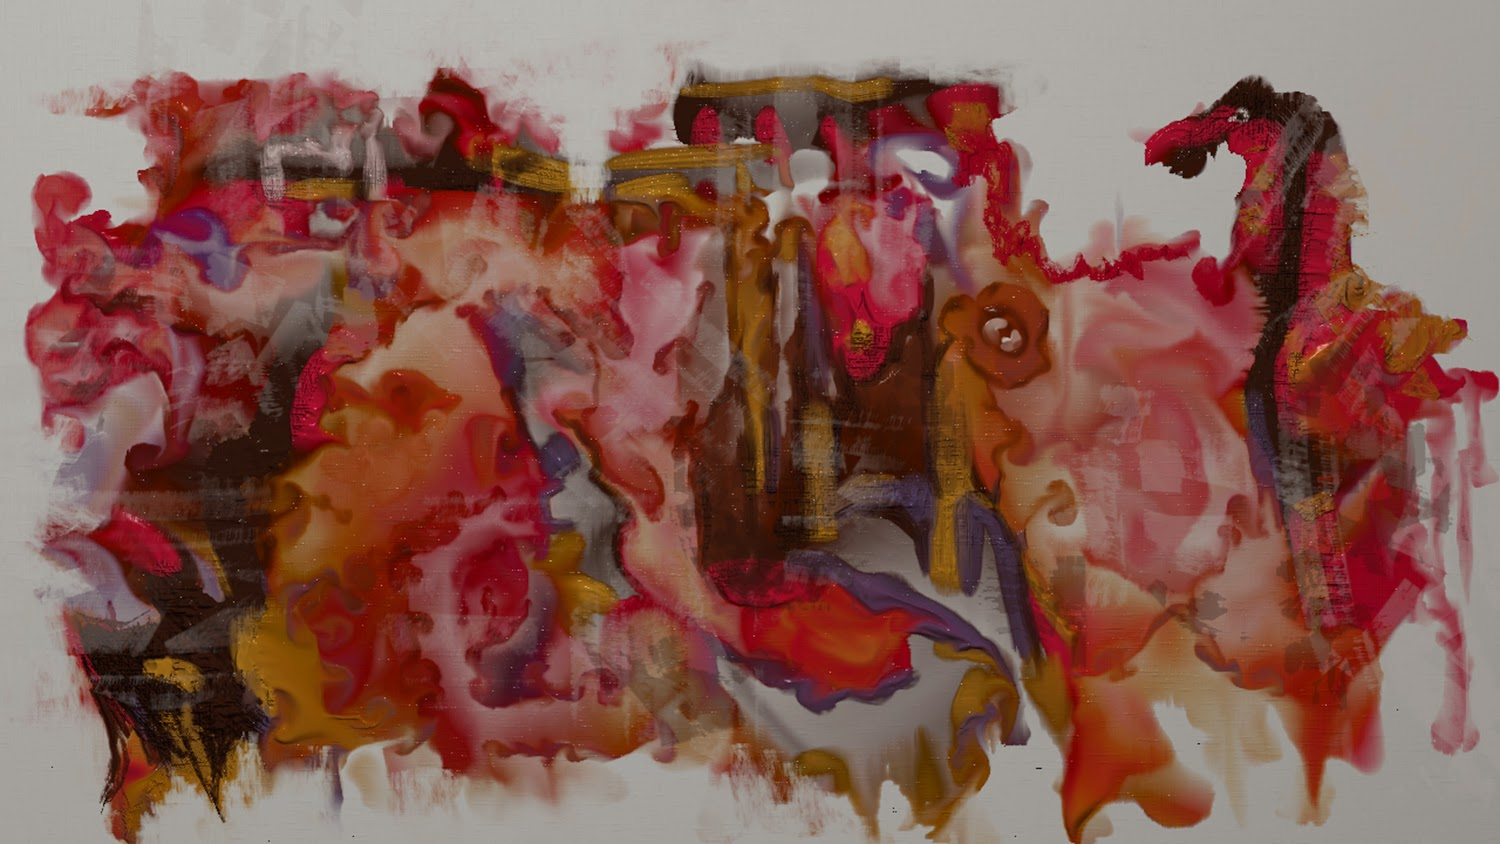 Photo: 20 minute abstract doodle - done using Verve Painter